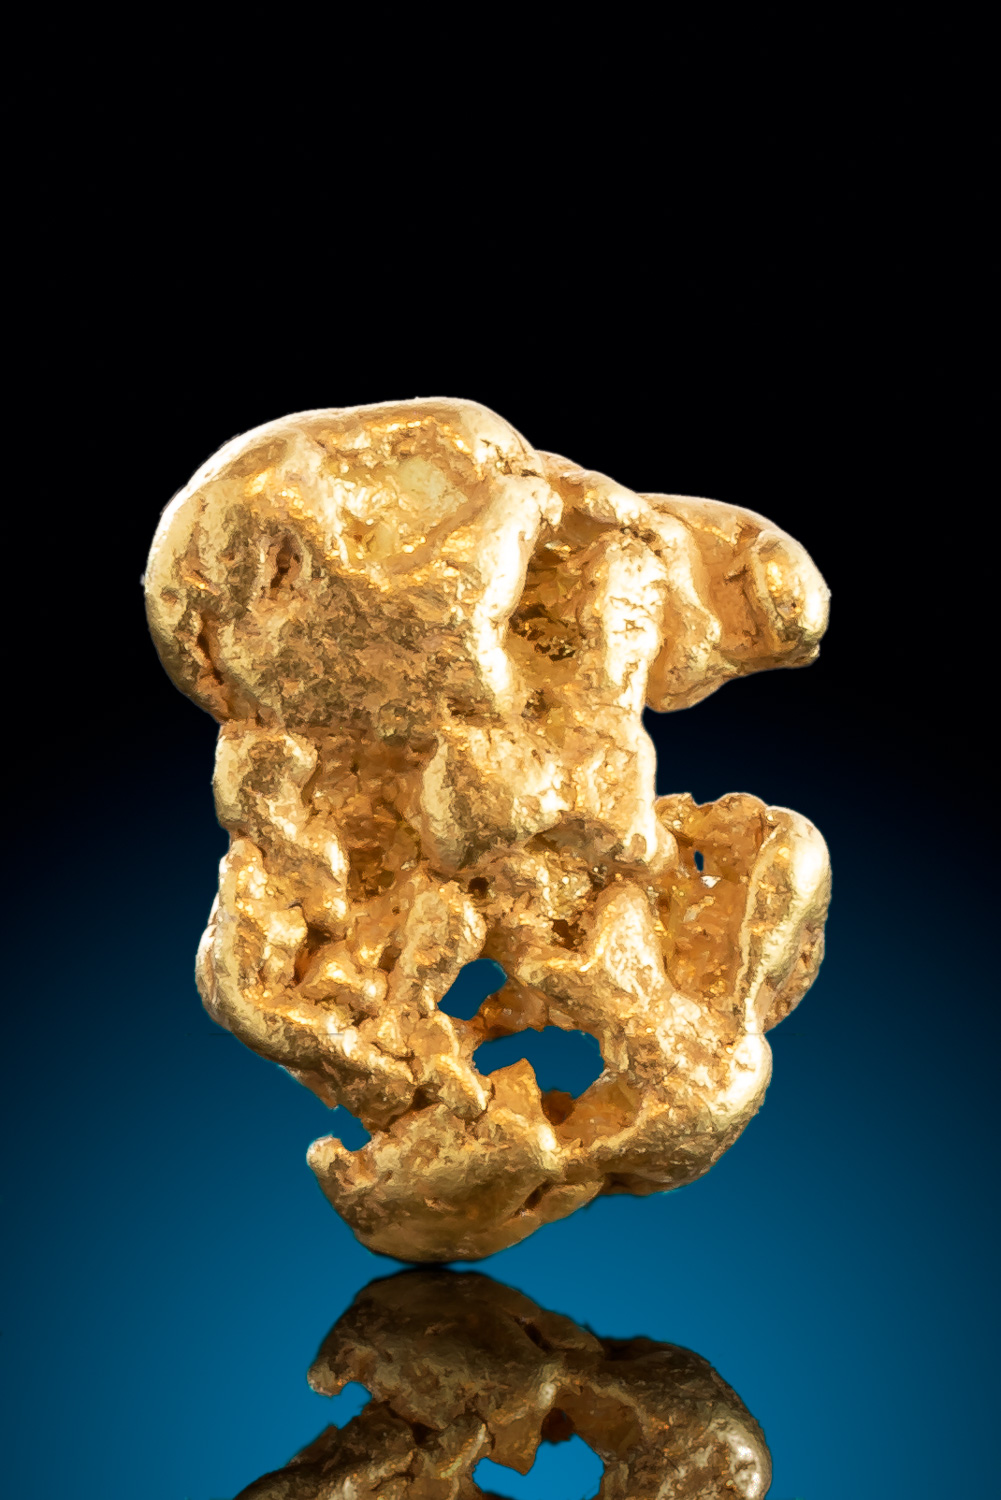 Intricate Form - Smooth and Detailed Natural Alaskan Gold Nugget